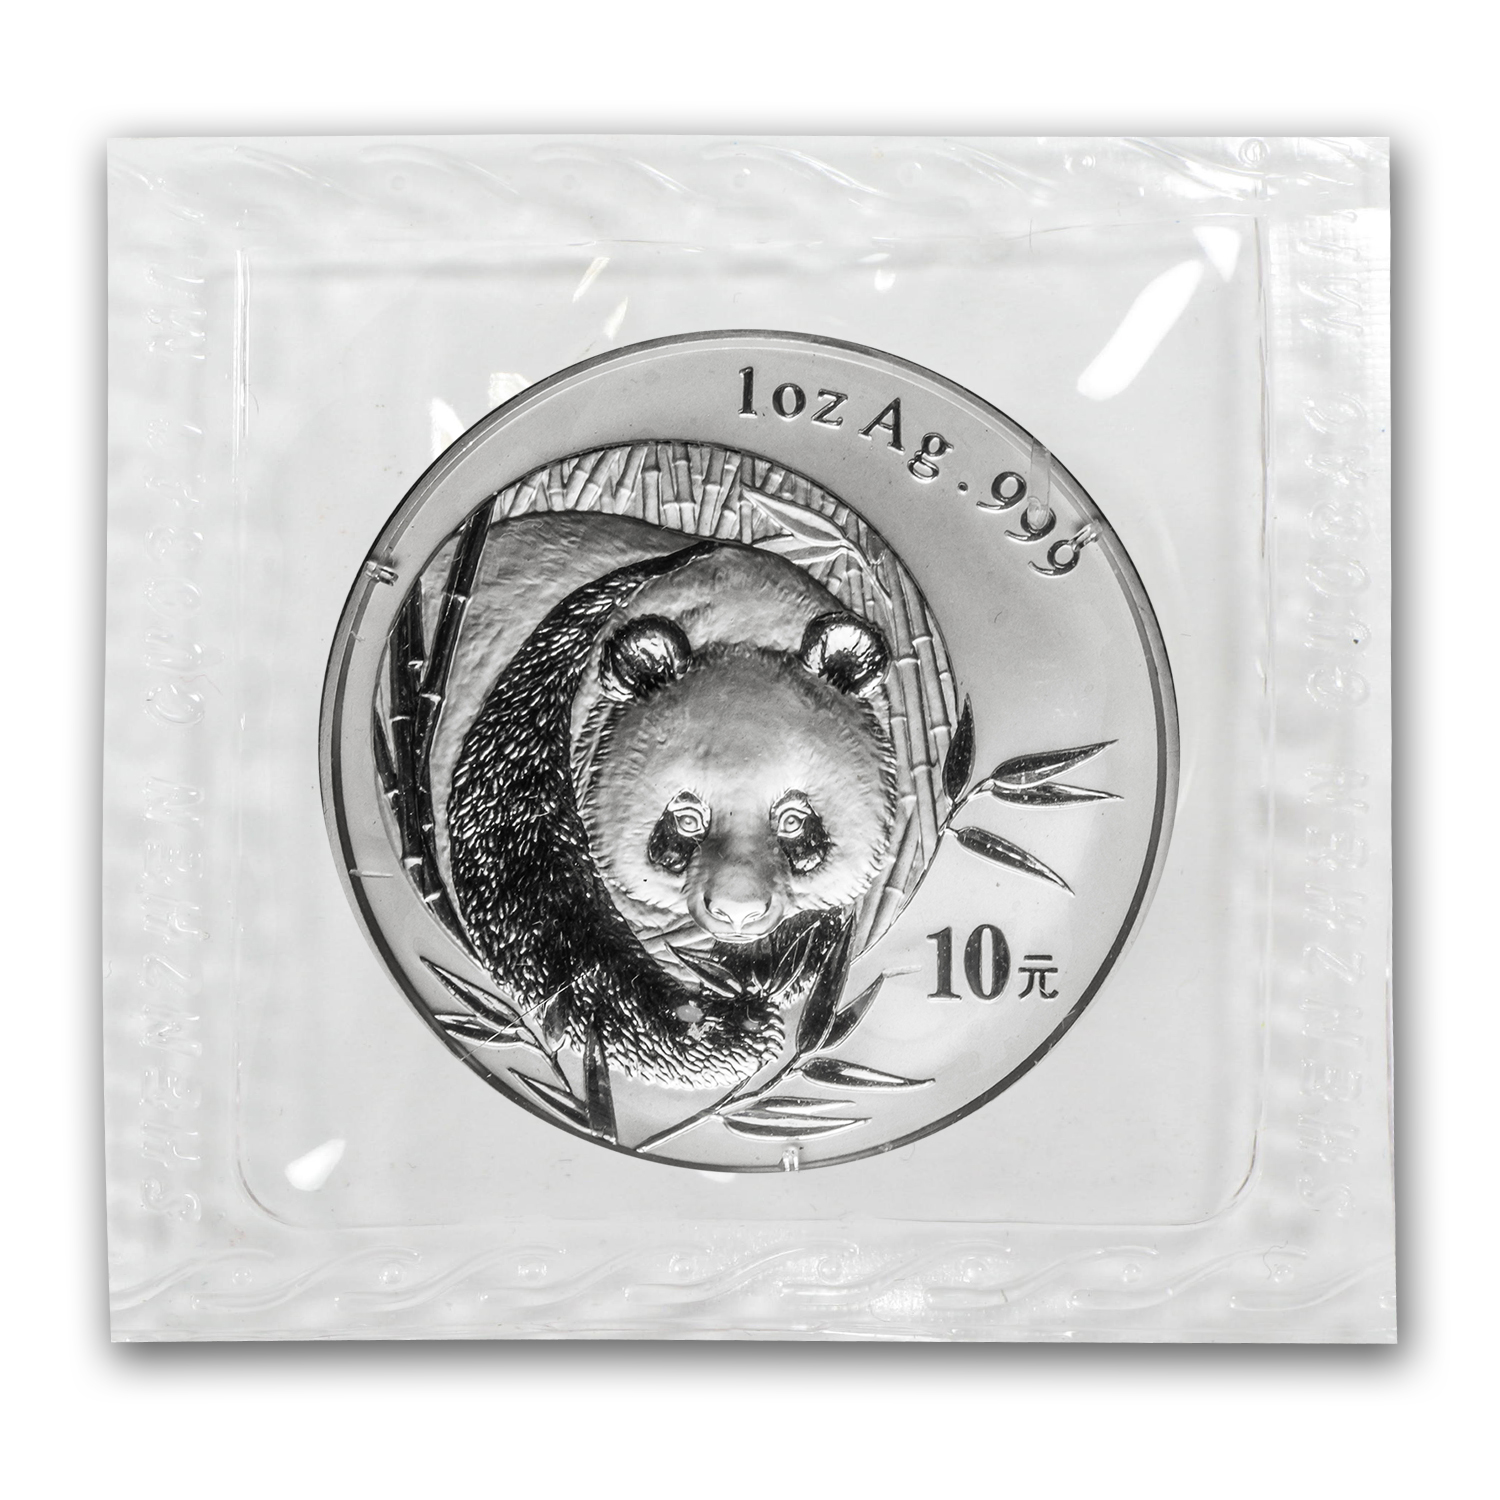 2003 China 1 oz Silver Panda BU (Sealed)